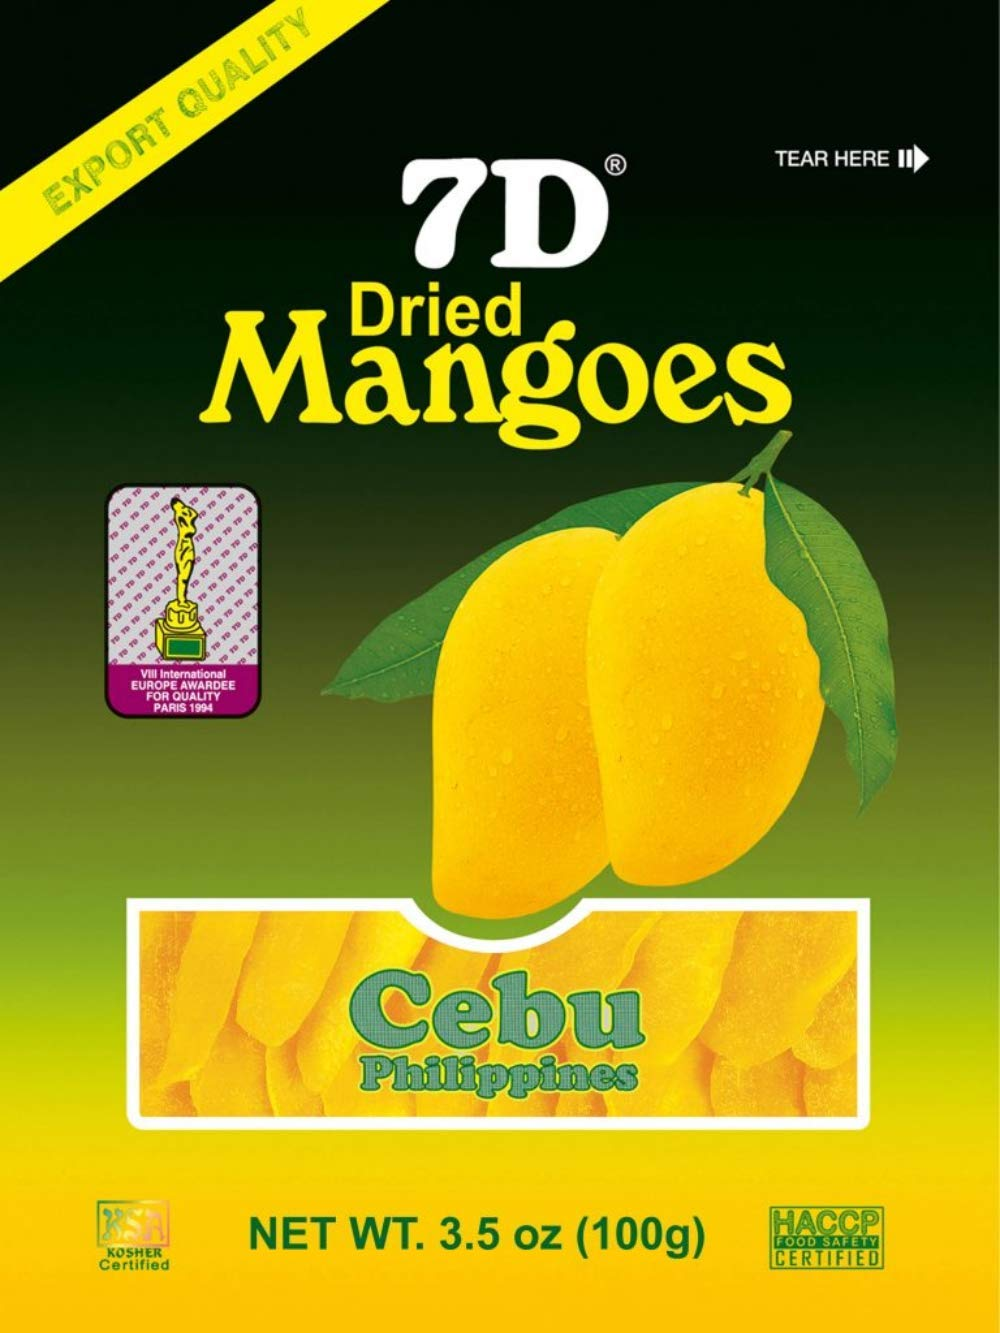 7D Philippine Dried Mangoes Premium Quality Cebu Mango Guaranteed Authentic - Pack of 5 x 100g (500G) by 7D